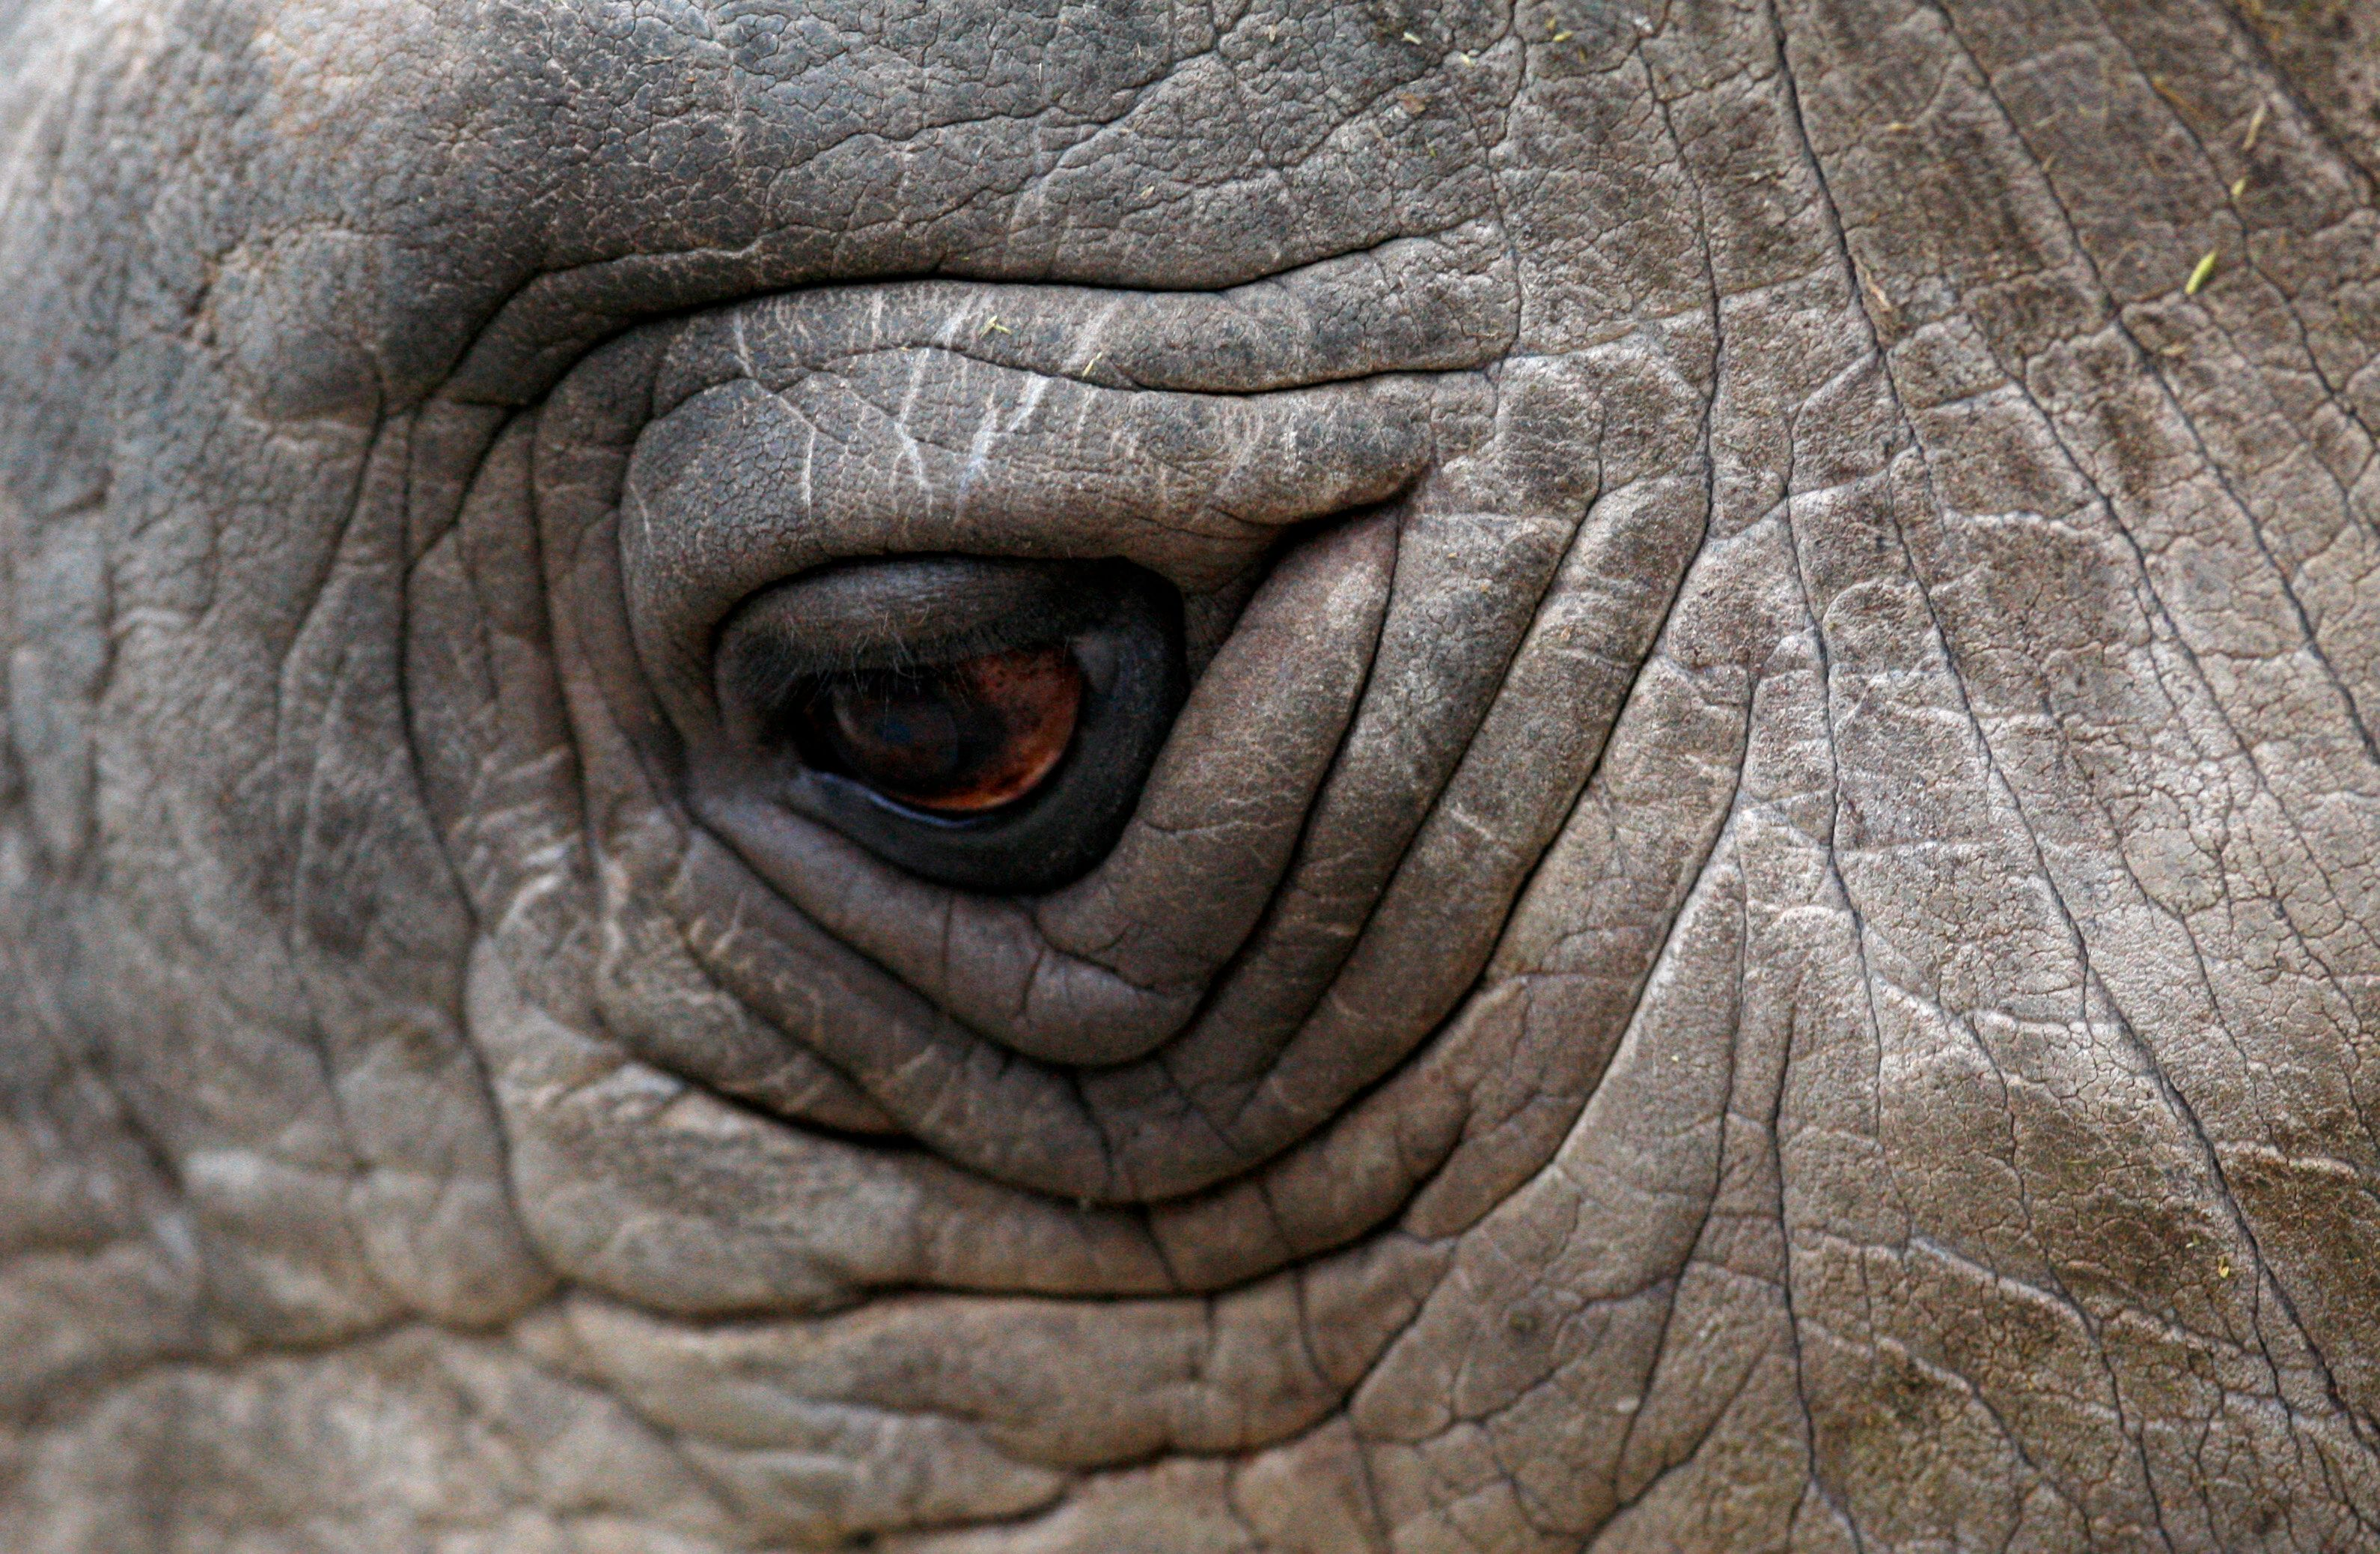 A close-up view of an eye of a Northern White Rhino named Sudan at the zoo in Dvur Kralove nad Labem in the Czech Republic December 16, 2009. Eight white rhinos live in captivity - six at the zoo in Dvur Kralove and two in the San Diego zoo - and experts believe they are among the last of the species left on the planet, as the rest of the population were killed by war and the loss of their habitat in Africa. Officials at the Czech zoo said four of the rhinos will be moved to the Ol Pejeta reservation in Kenya on Saturday in an effort to conserve the population. REUTERS/Petr Josek (CZECH REPUBLIC - Tags: ANIMALS ENVIRONMENT SOCIETY)